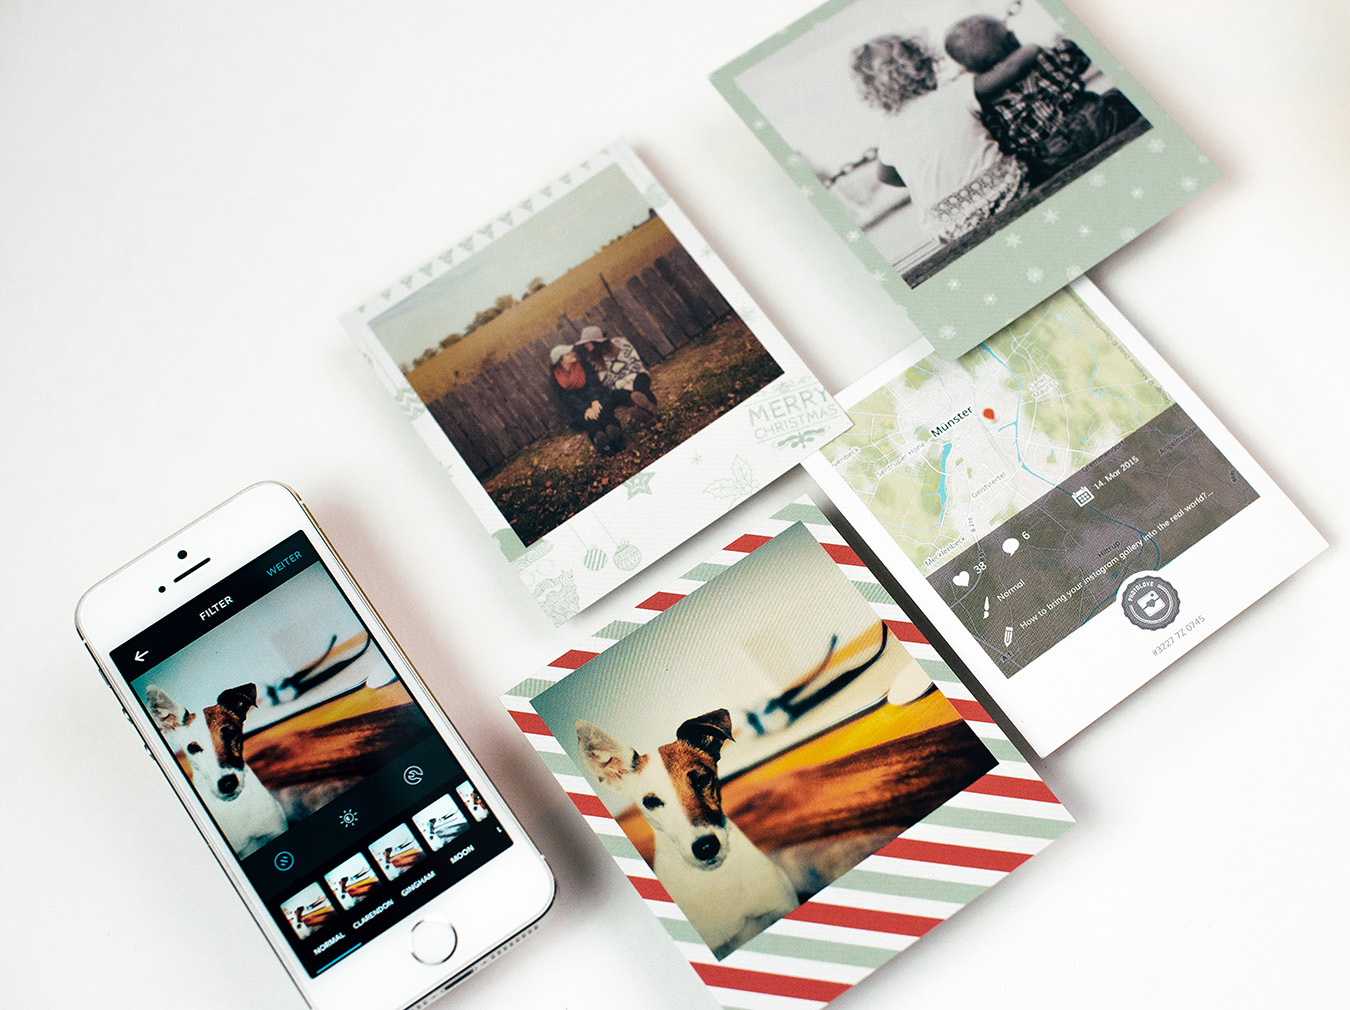 Print my Instagram photos